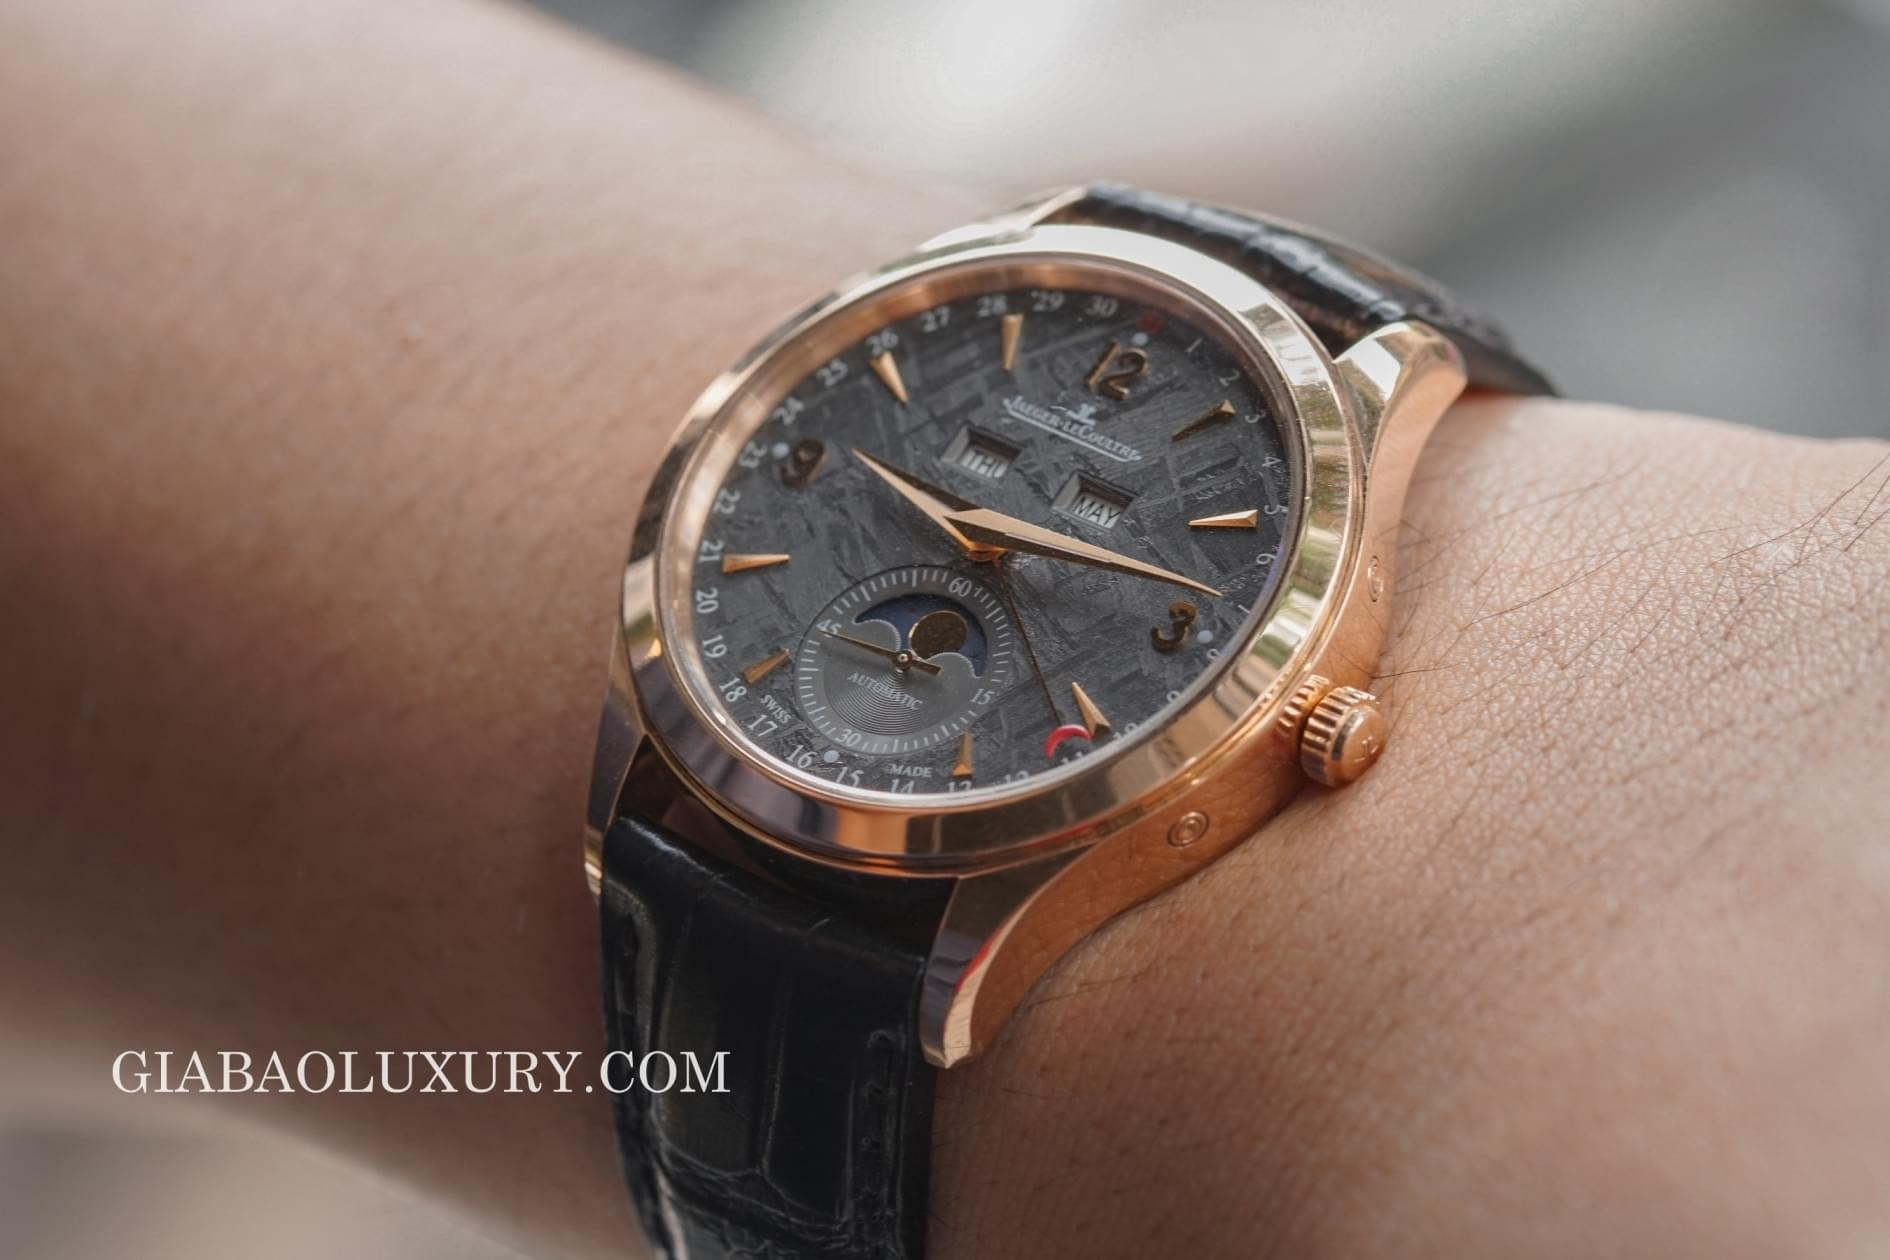 https://giabaoluxury.com/collections/all/brand-jaeger-lecoultre